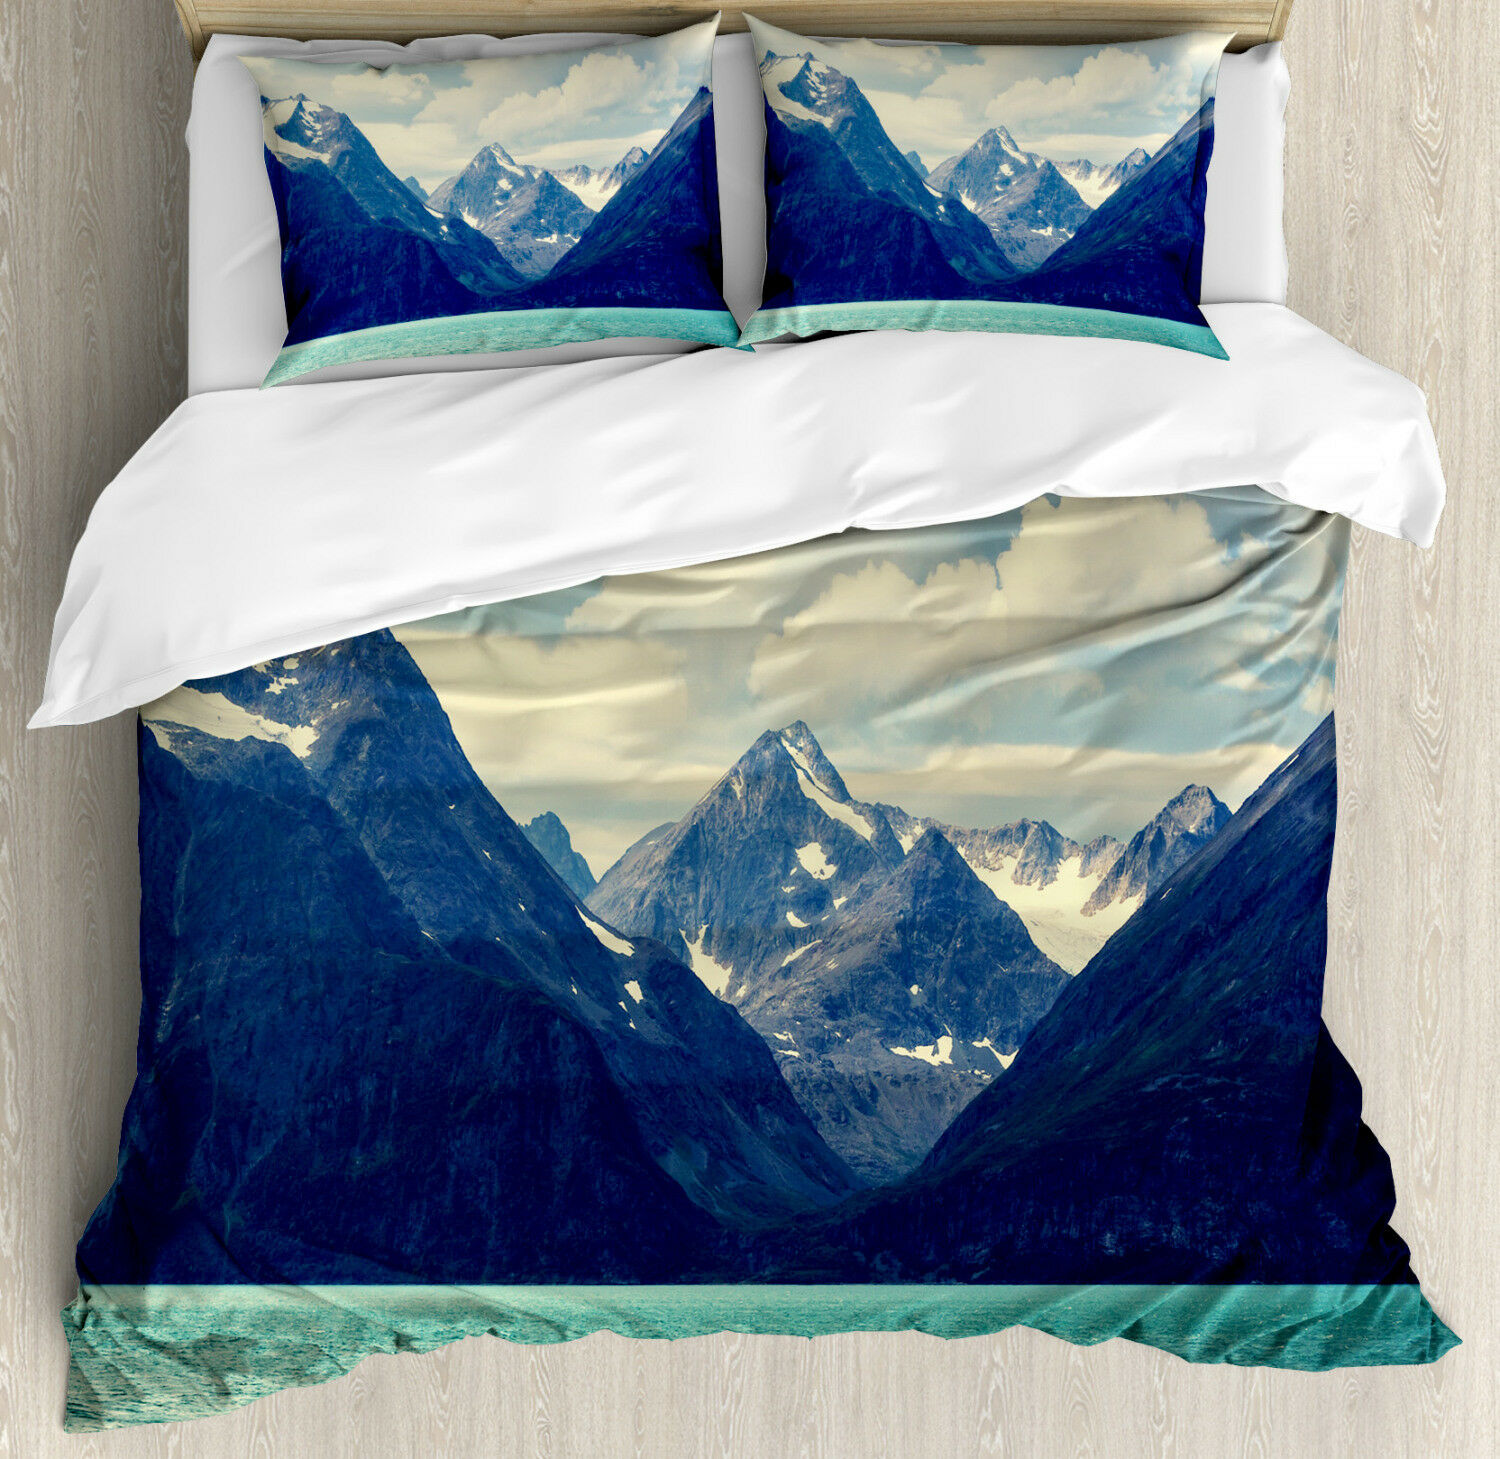 Mountain Duvet Cover Set with Pillow Shams Northern Norway Harbor Print